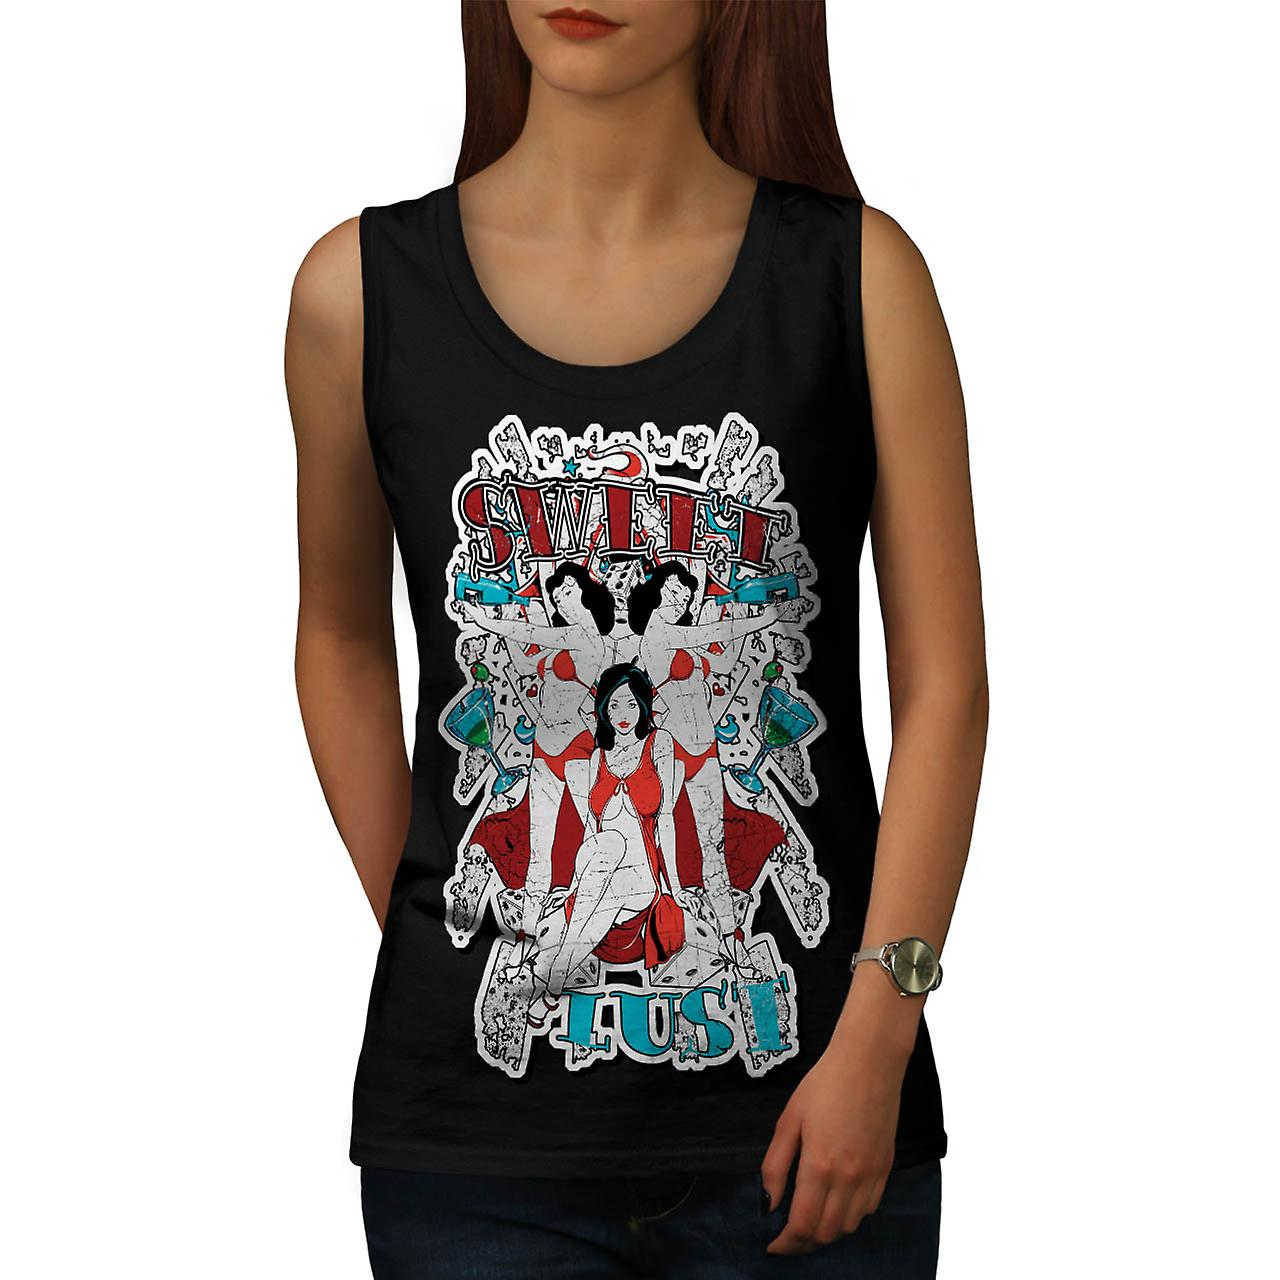 Sweet Lust Casino Bet Seduction Women Black Tank Top | Wellcoda